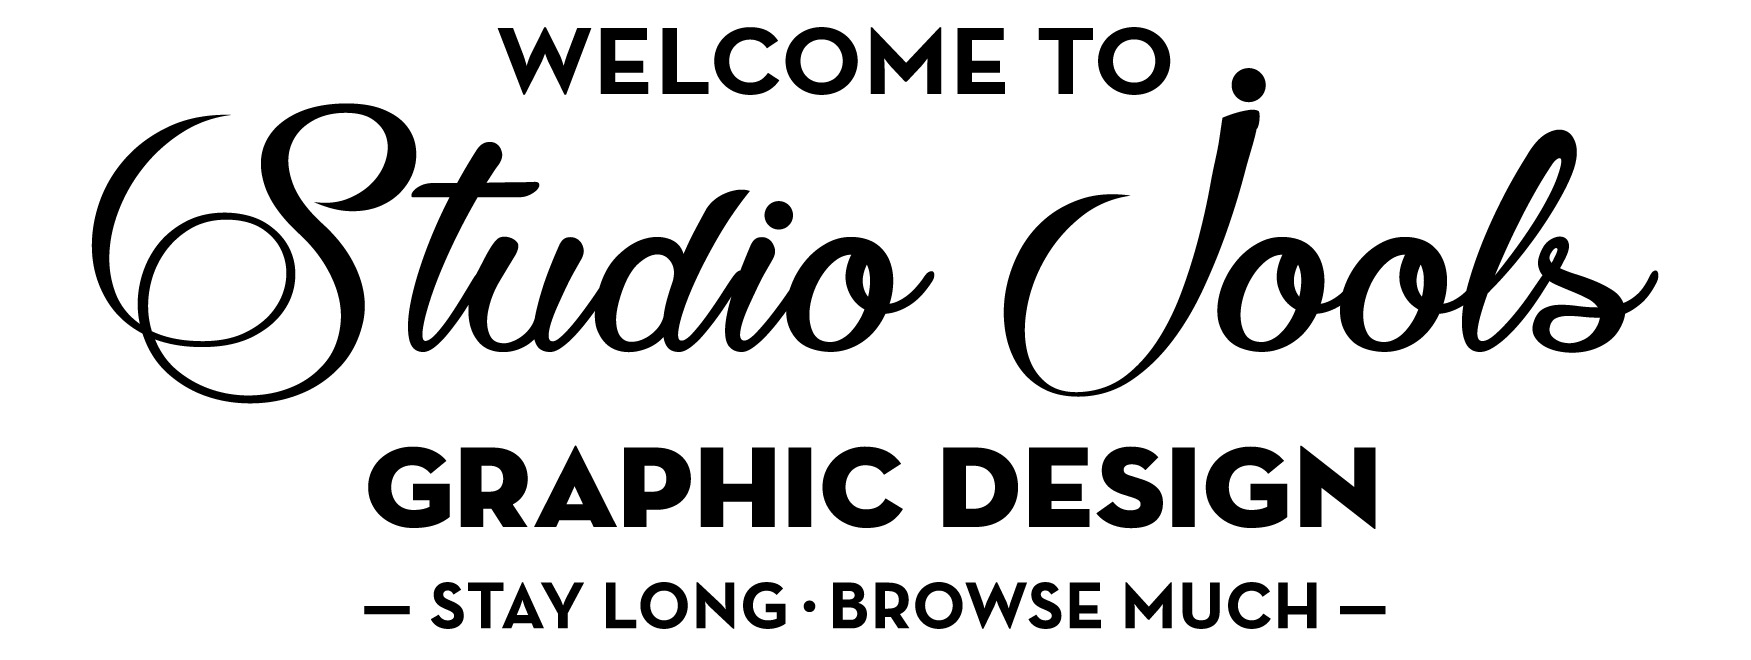 Welcome to Studio Jools graphic